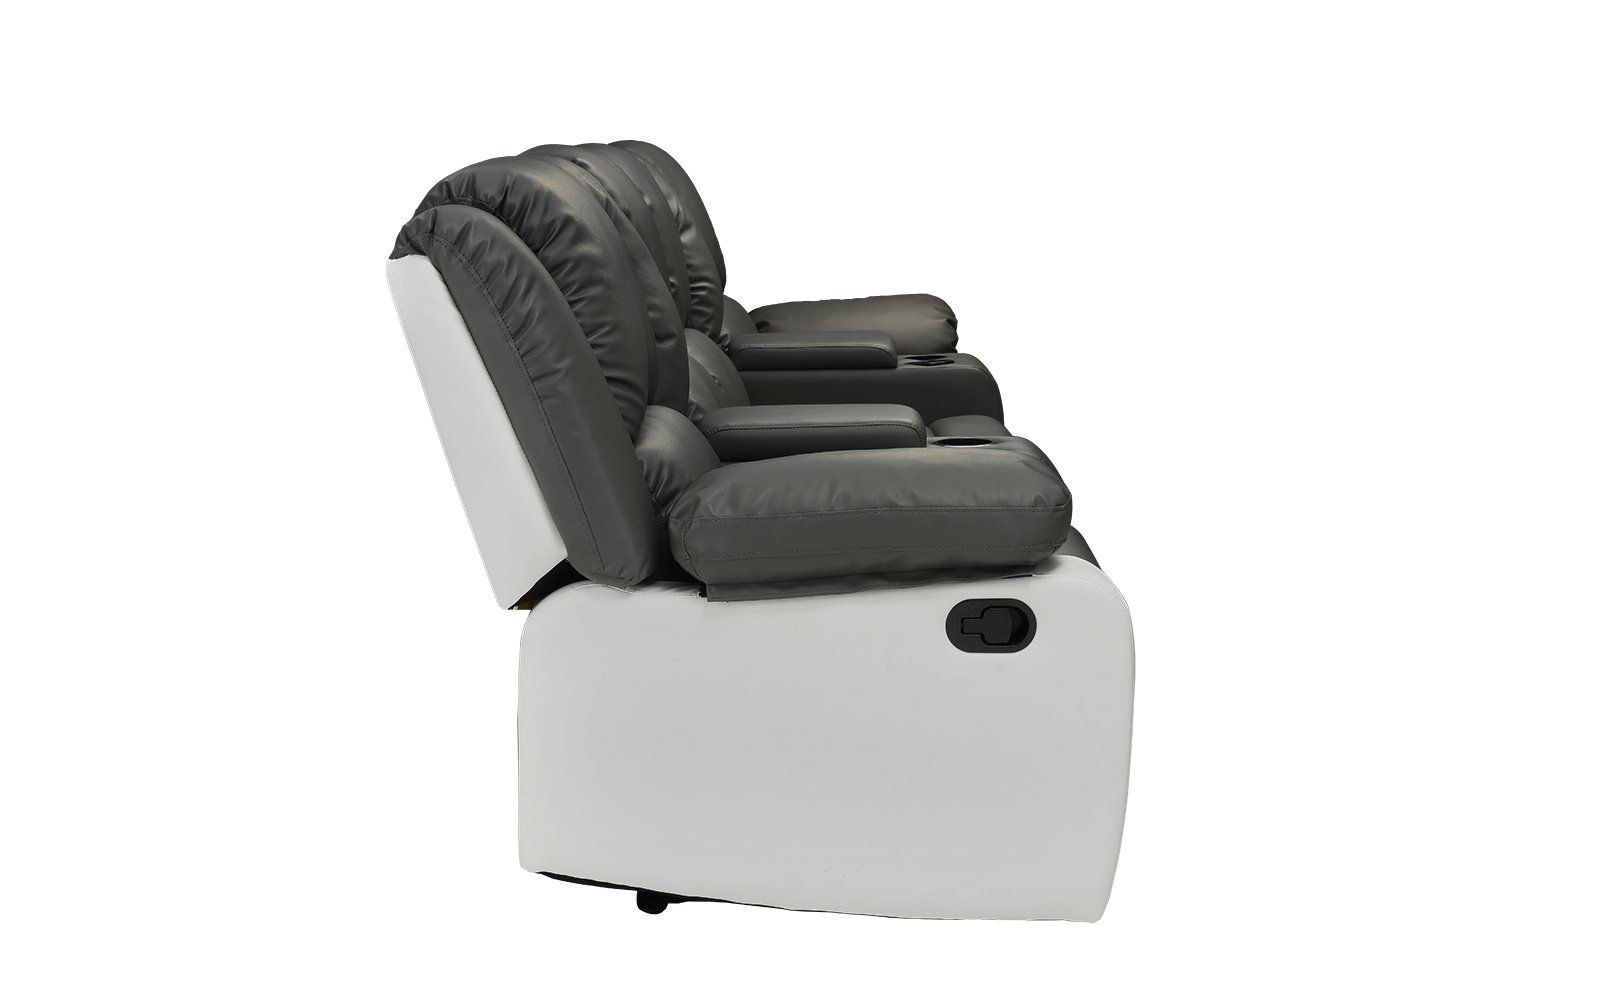 4 Seat Large Classic Recliner Sofa With Cup Holders Home Theater Recliner  Couch Grey / White